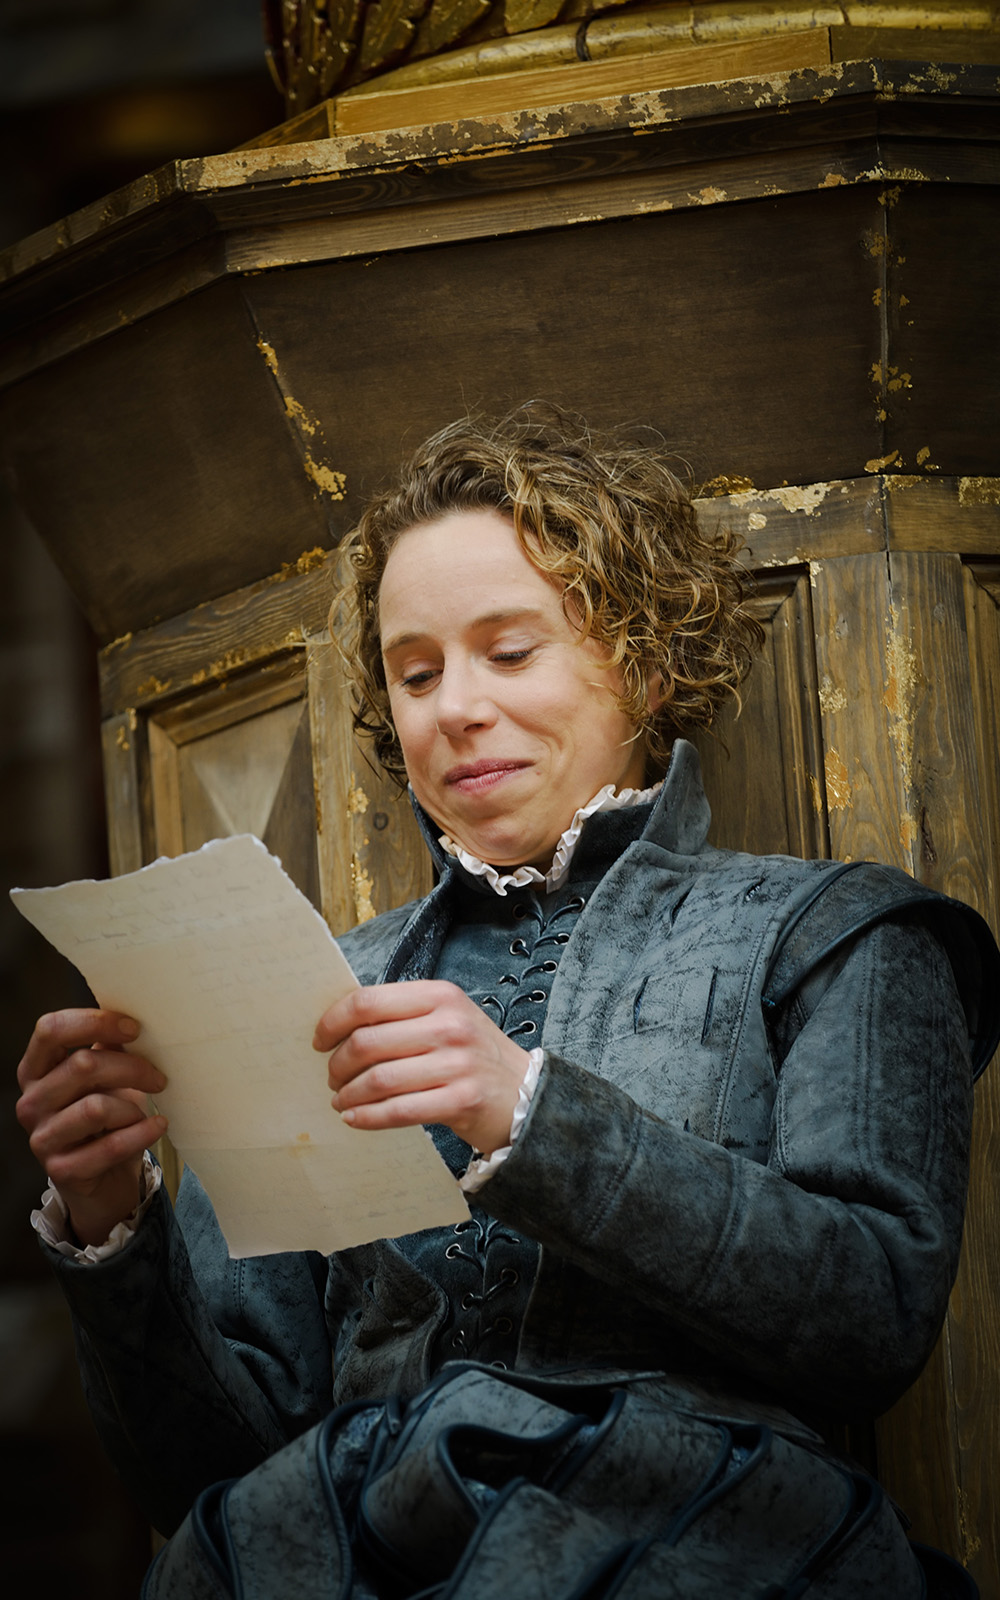 An actor with short curly hair and wearing a doublet and hose sits reading a poem on a sheet of paper, smiling.